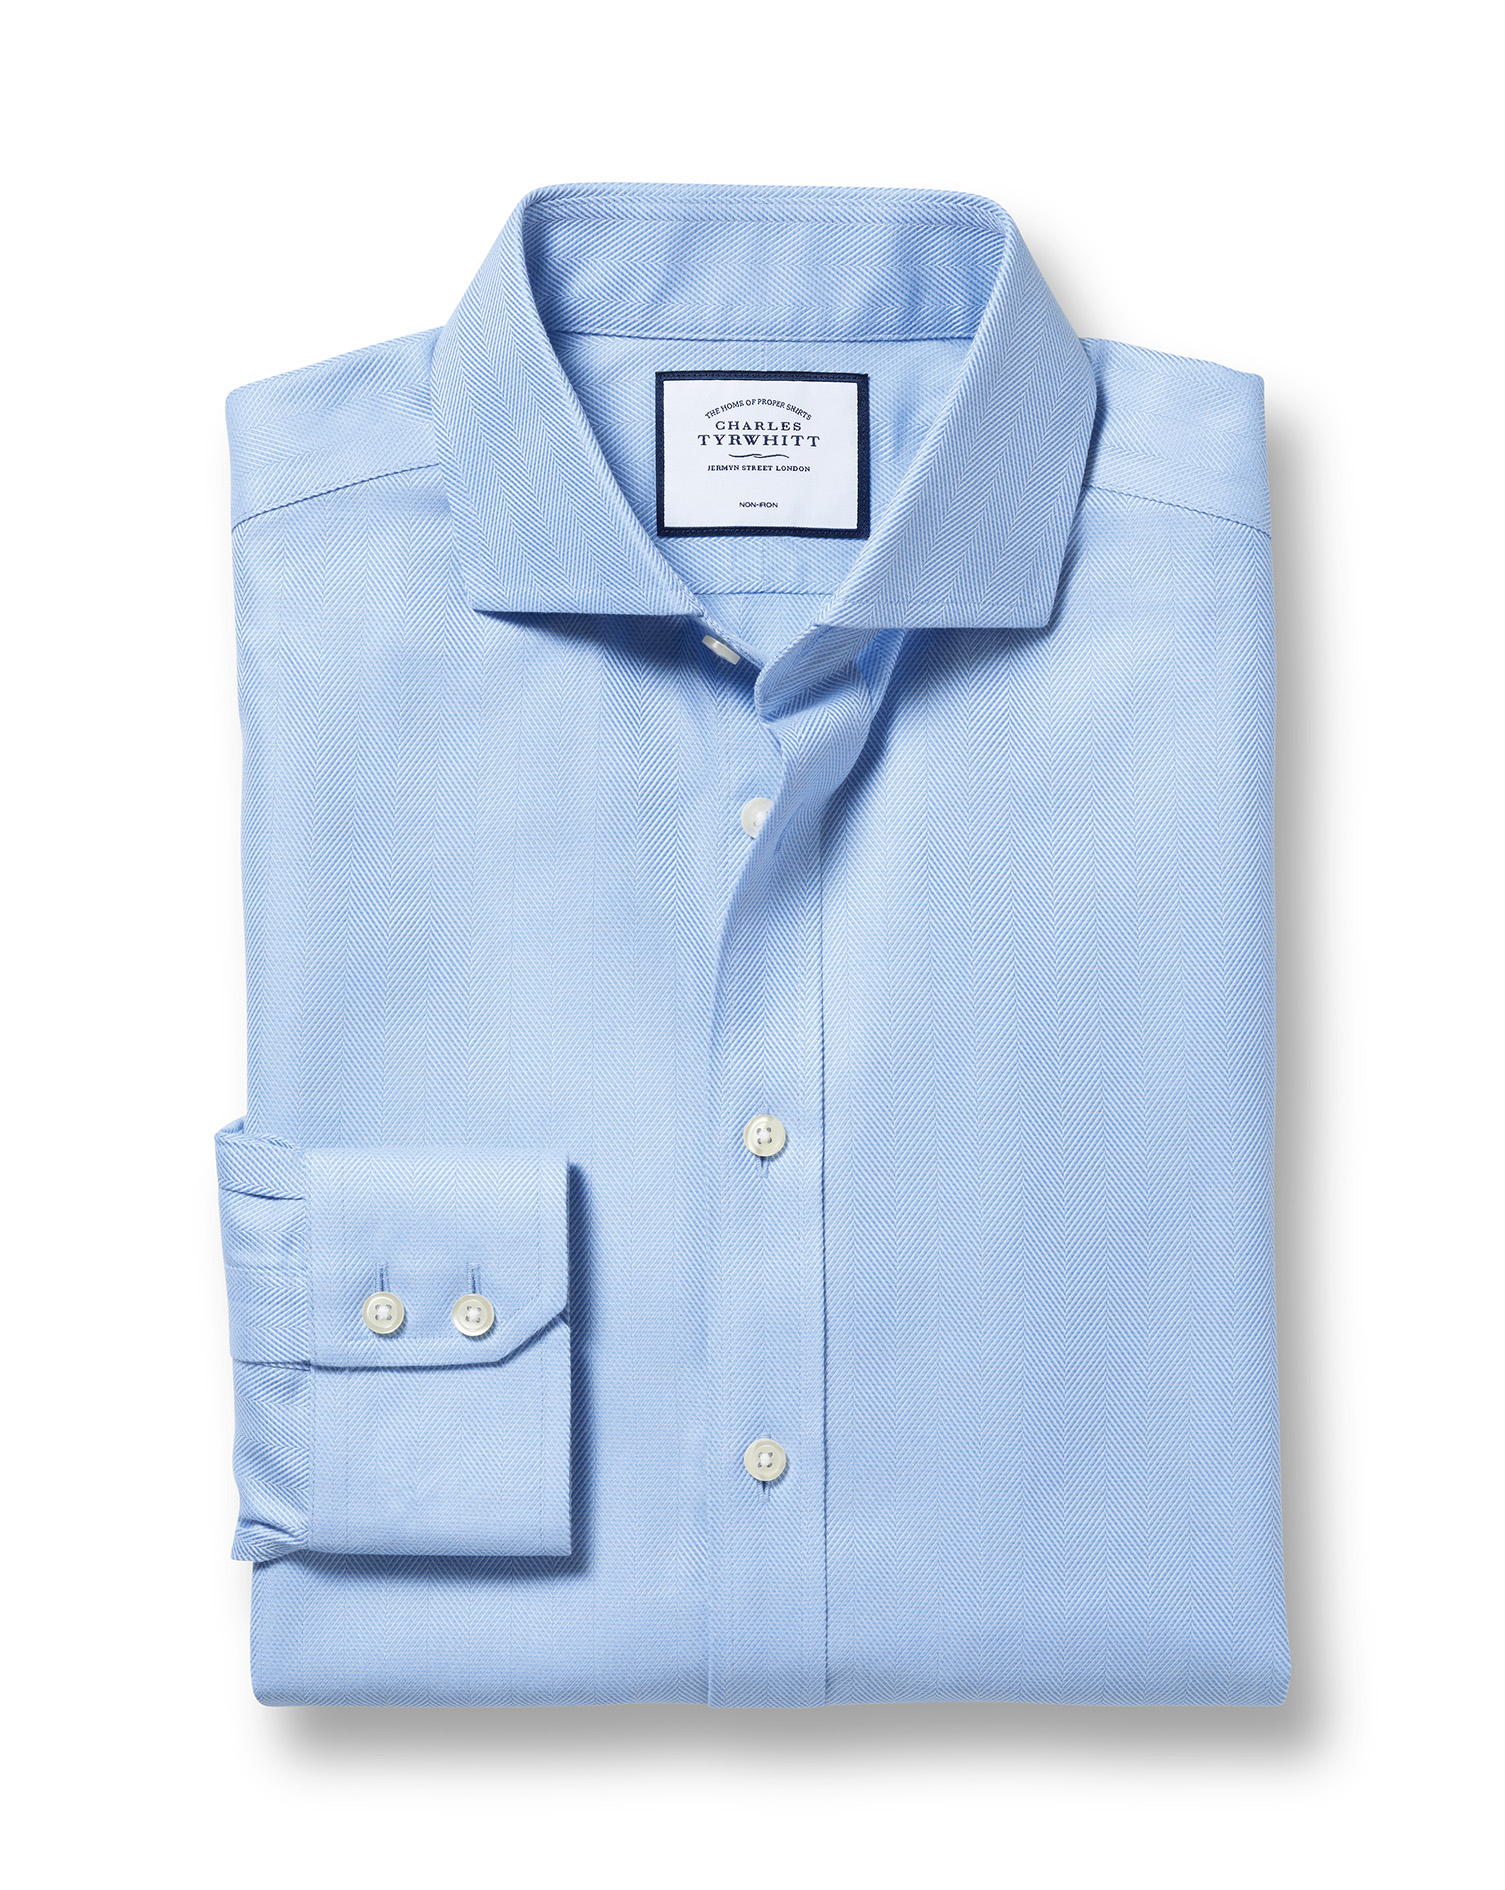 Extra Slim Fit Cutaway Non-Iron Herringbone Sky Blue Cotton Formal Shirt Double Cuff Size 16.5/34 by